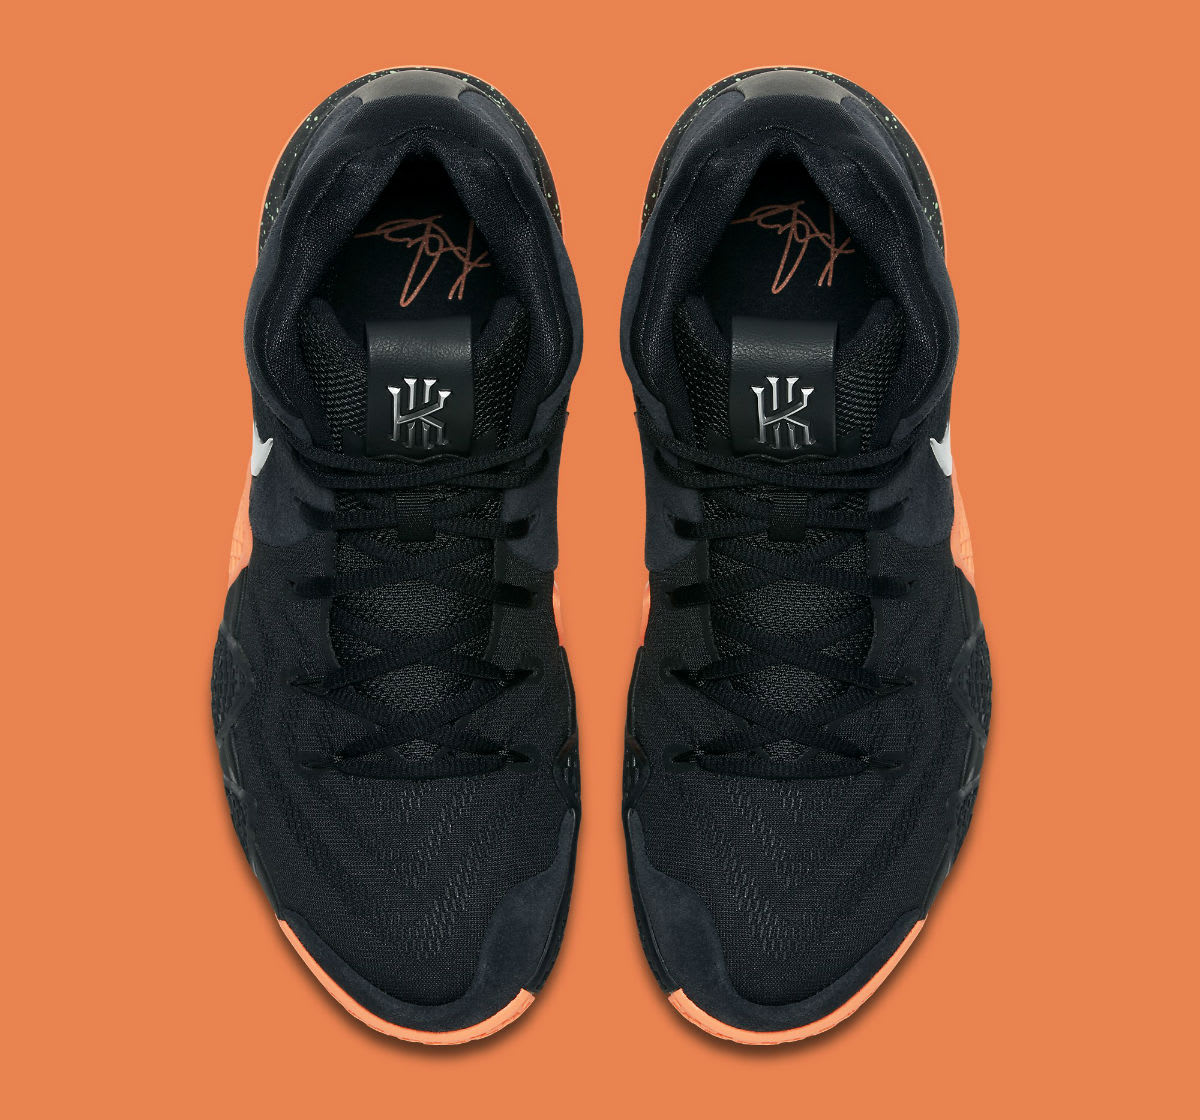 Nike Kyrie 4 Black/Silver-Orange Release Date 943806-010 Top